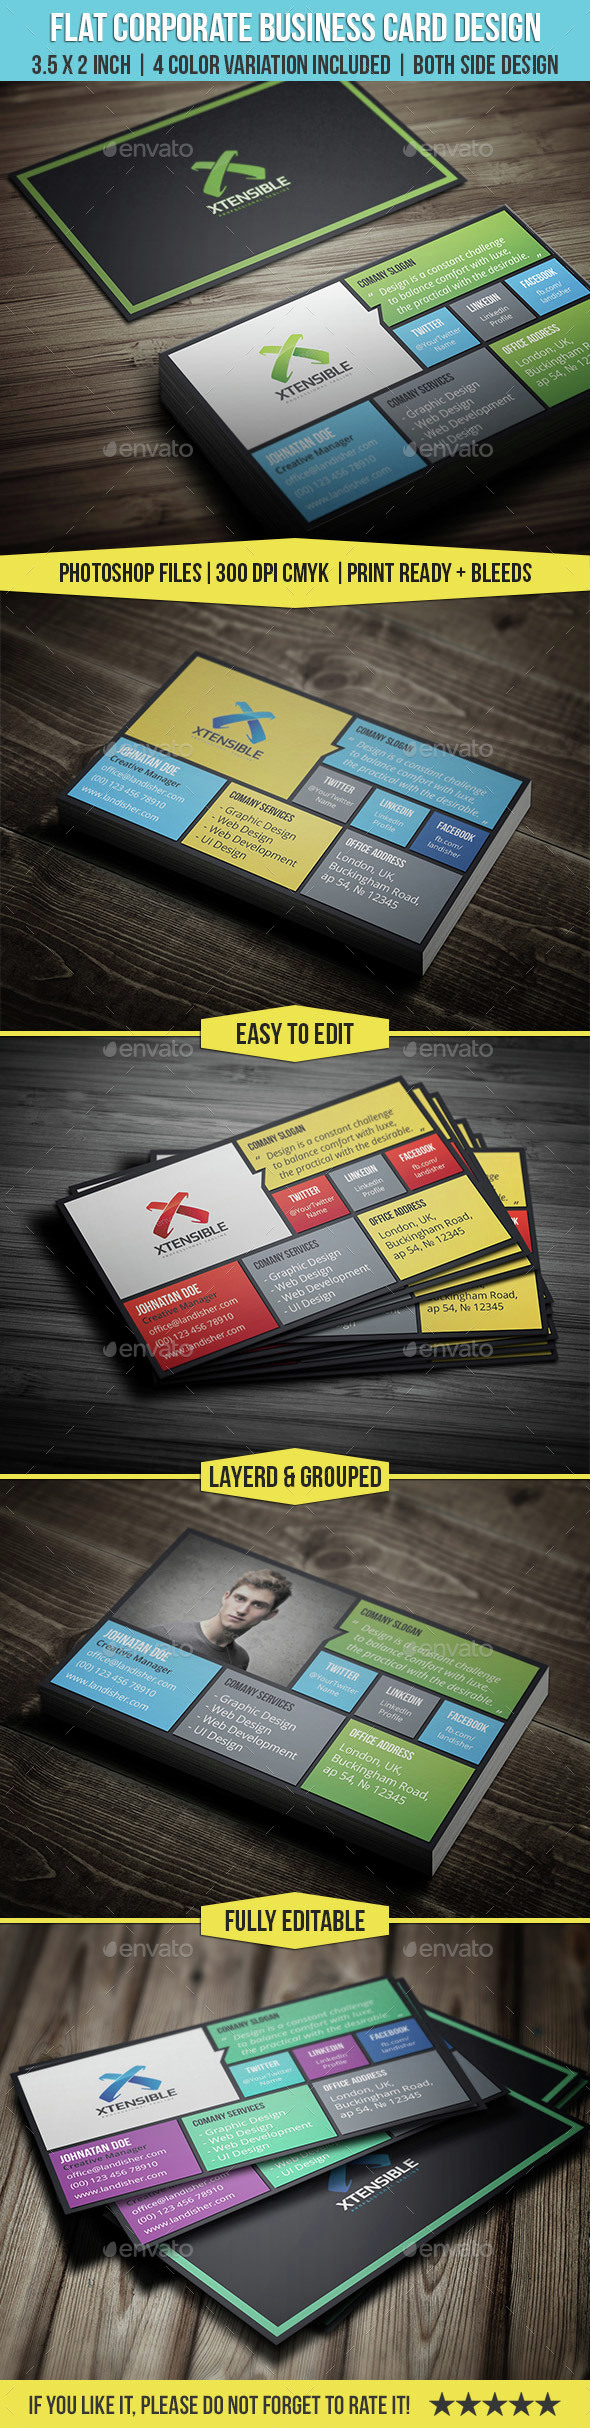 Flat Corporate & Personal Business Card - Business Cards Print Templates